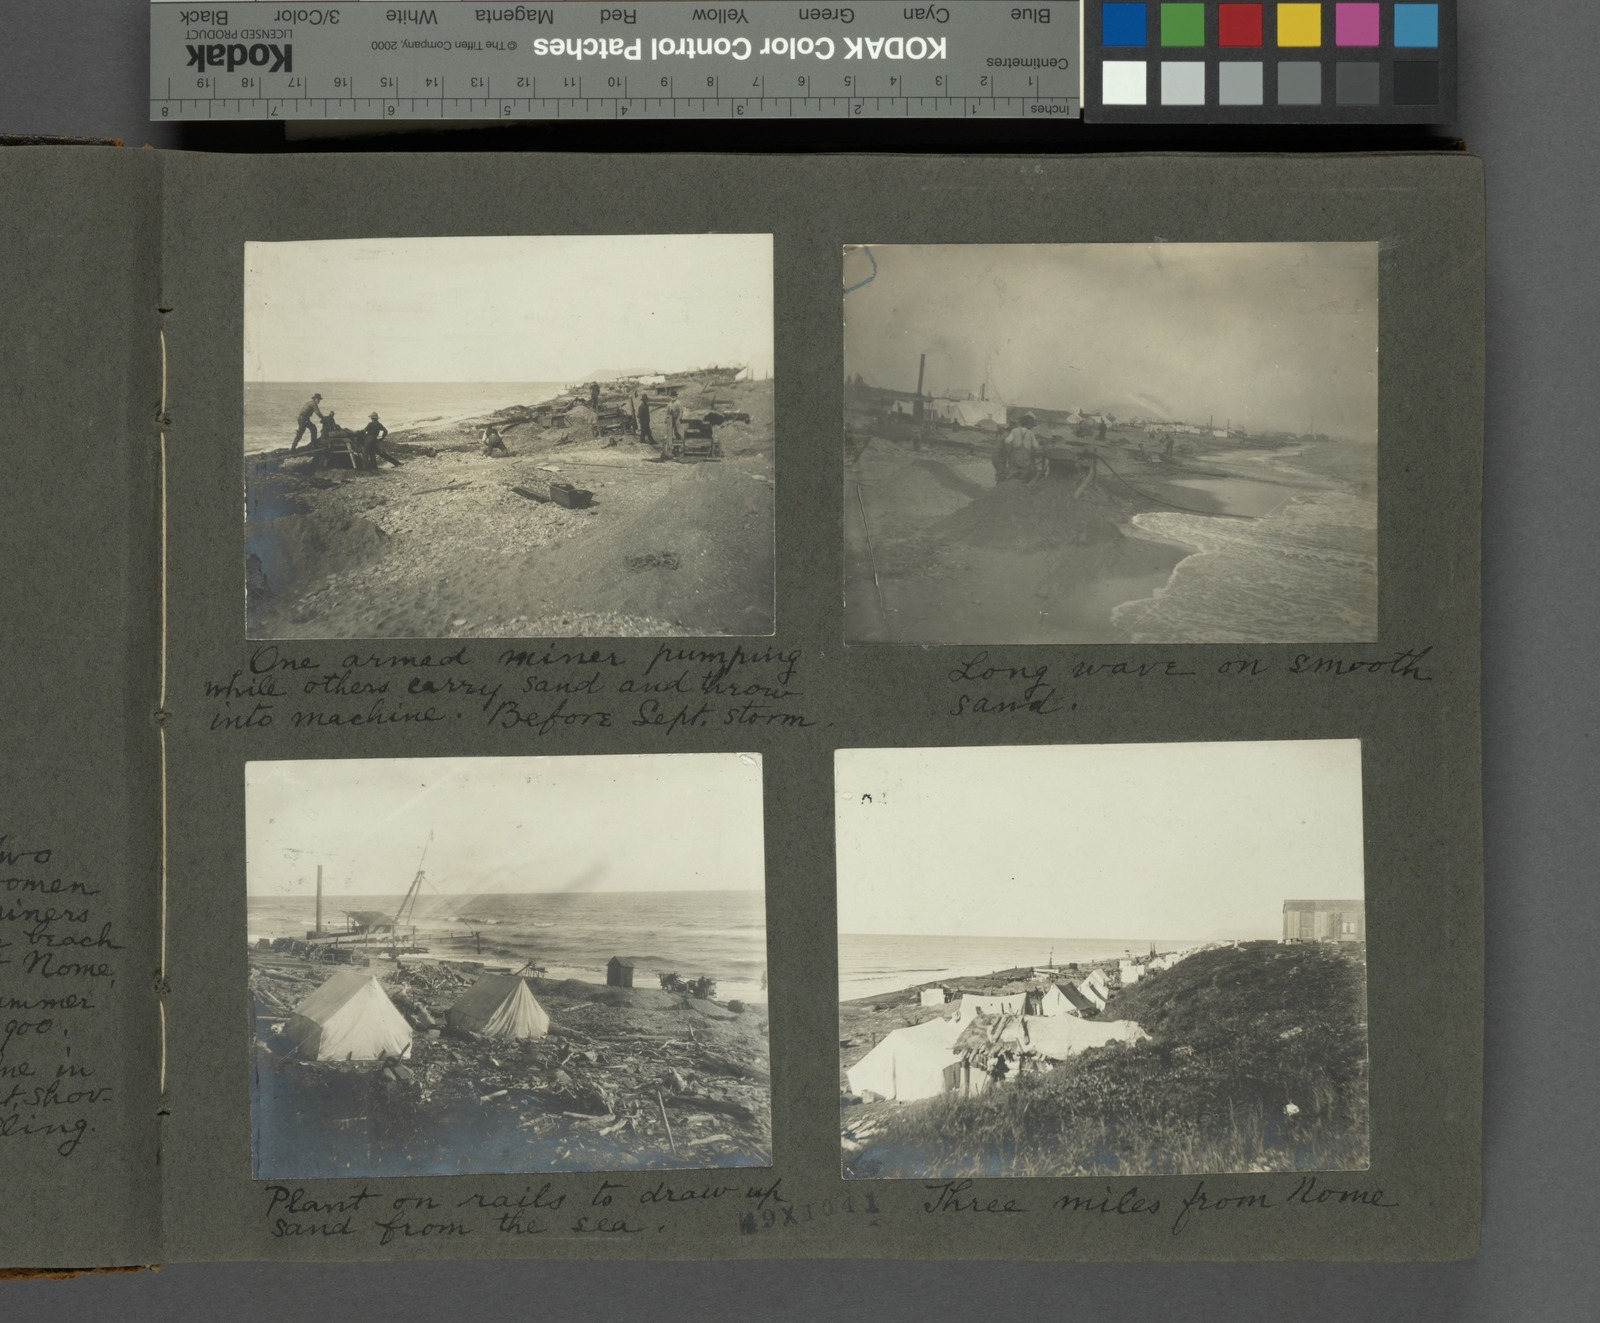 Frank E. Downs. Trip to Nome, Alaska, May to Sept. 1900: One armed miner pumping while others carry sand and throw into machine. Before Sept. storm; Long wave on smooth sand; Plant on rails to draw up sand from the sea; Three miles from Nome.